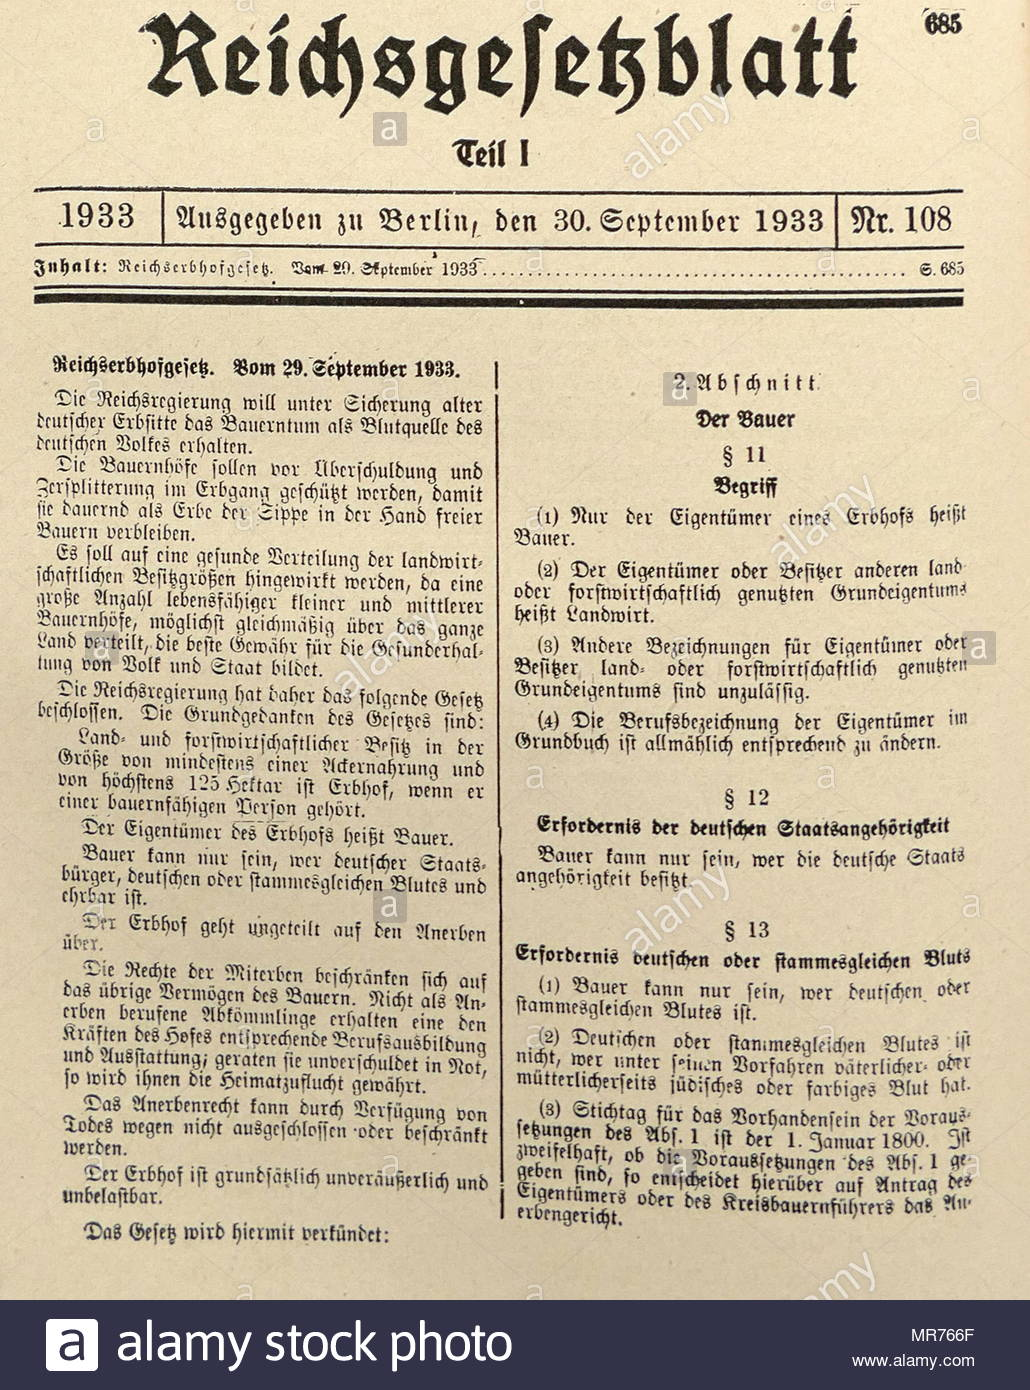 Nazi Era, Decree : The Hereditary Farm Law (September 29, 1933. The Hereditary Farm Law of September 29, 1933, was a first step toward state control of the agrarian economy and was intended to protect German farmers against the unpredictable vagaries of the modern market economy, industrialization, and urbanization. - Stock Image